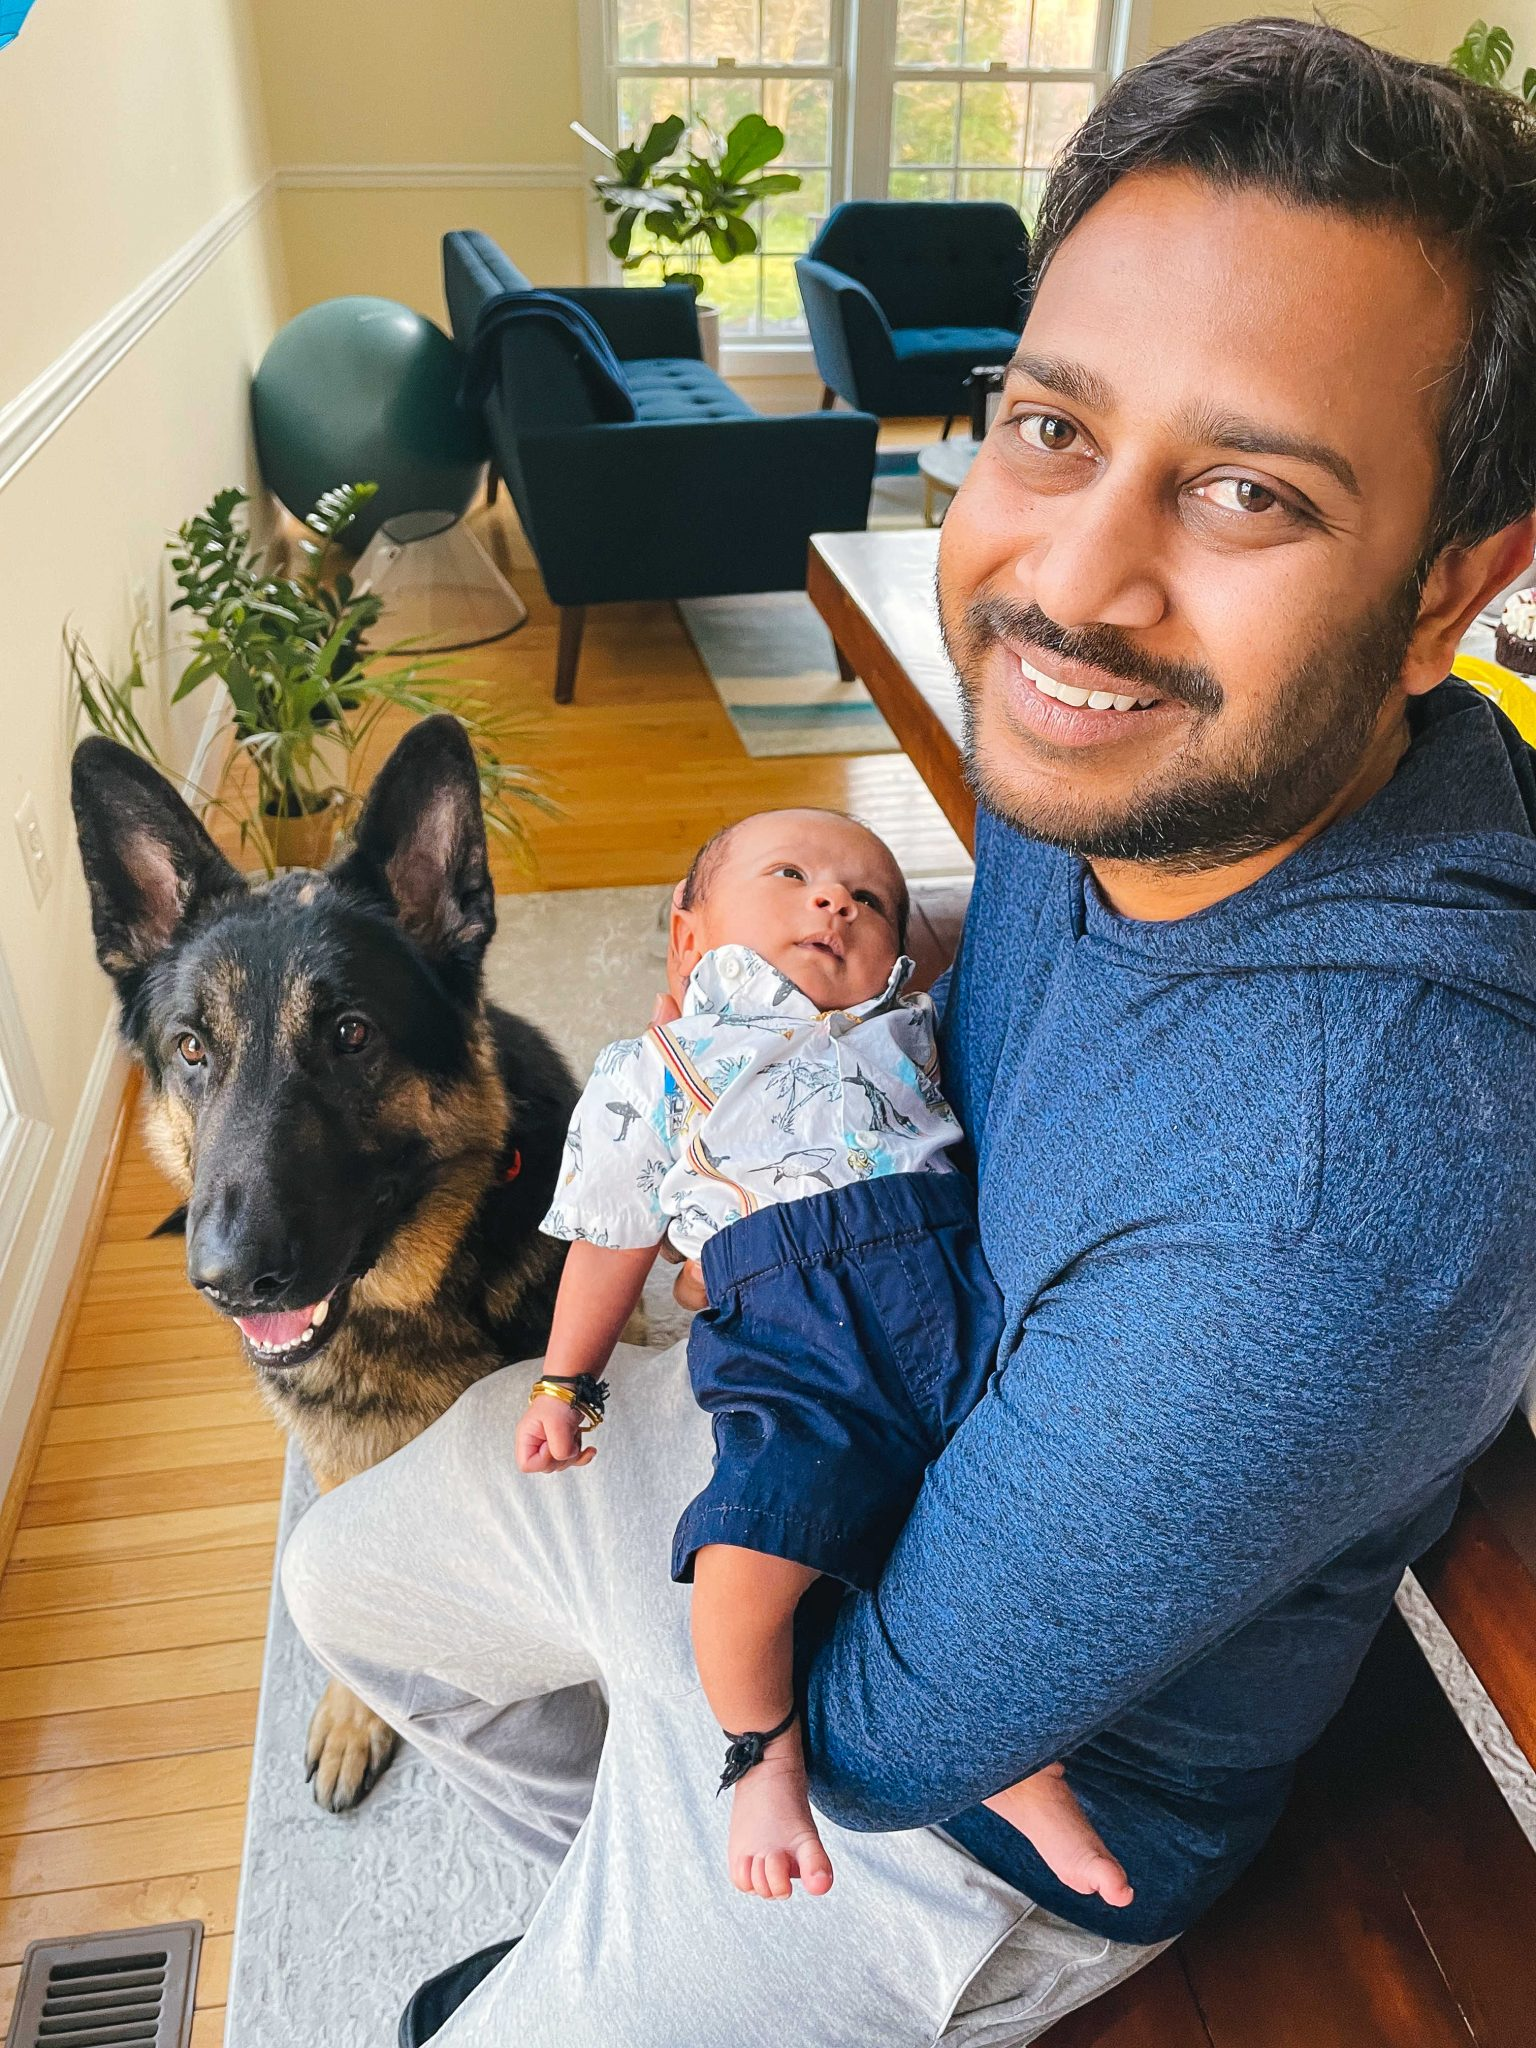 1 month with our baby boy Vihaan5 |1 Month Baby by popular Maryland motherhood blog, Dreaming Loud: image of a man sitting next to a German Shepard and holding a 1 month old baby boy.